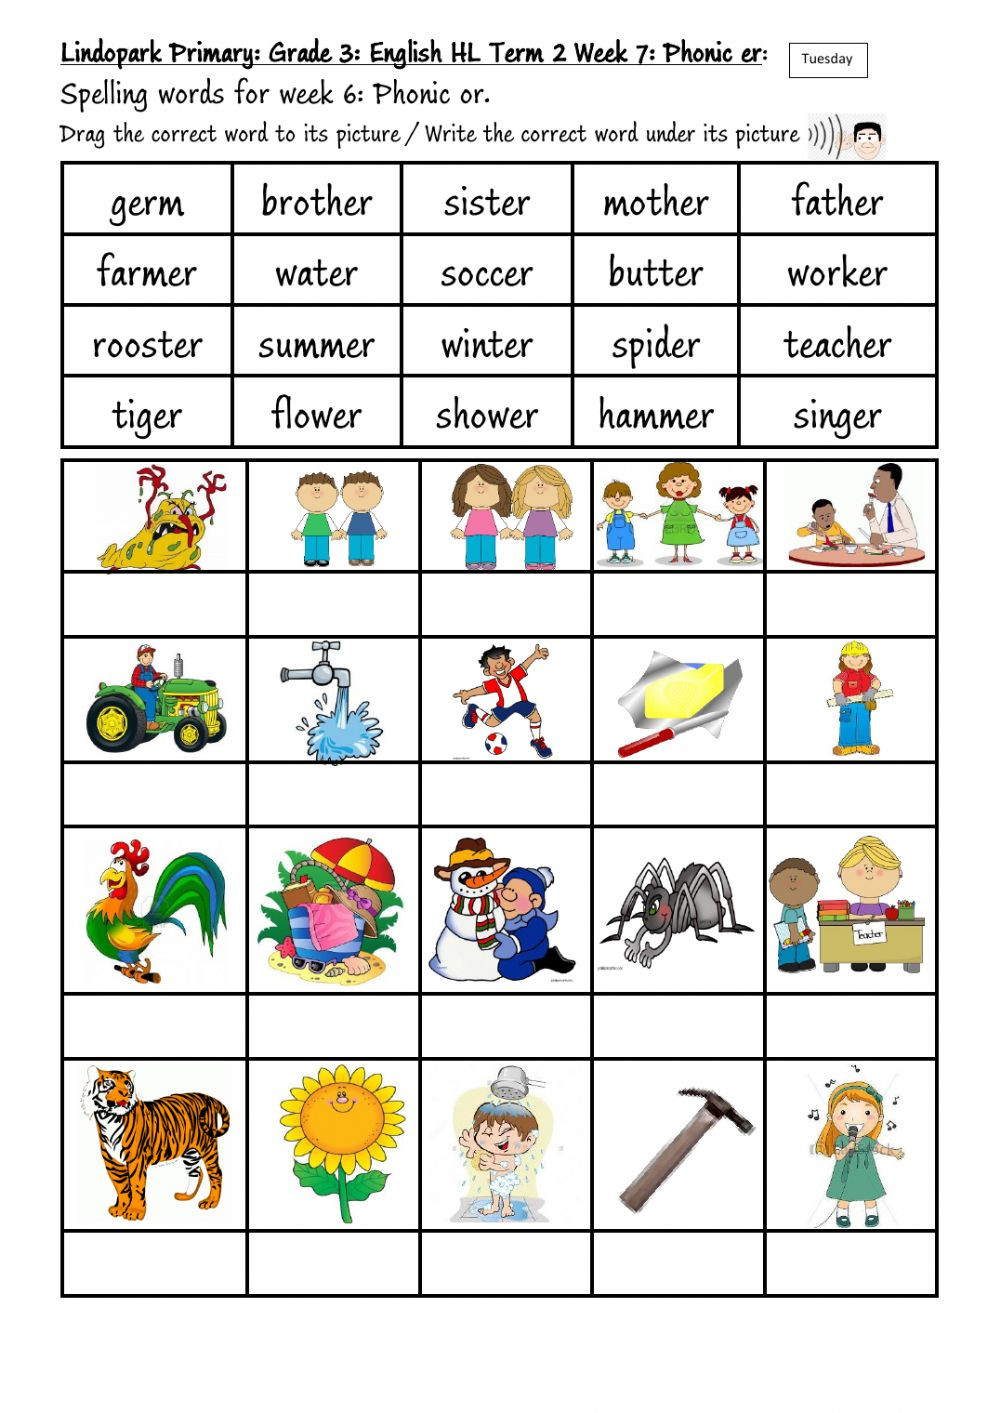 Phonic Worksheets Grade 2 Grade 3 Term 2 Week 7 English Phonic Er Tuesday